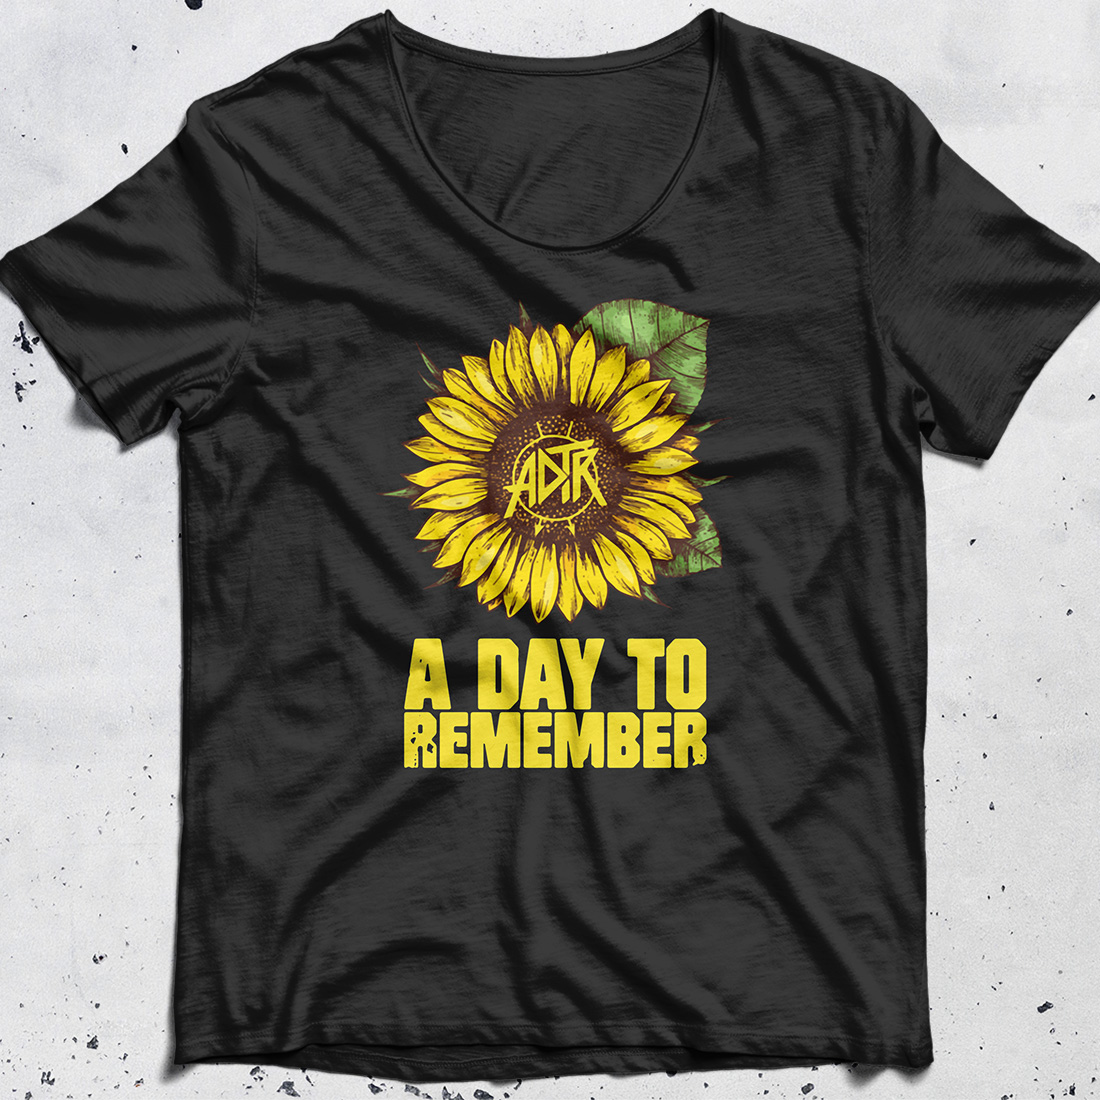 Sunflower a day to remember shirt